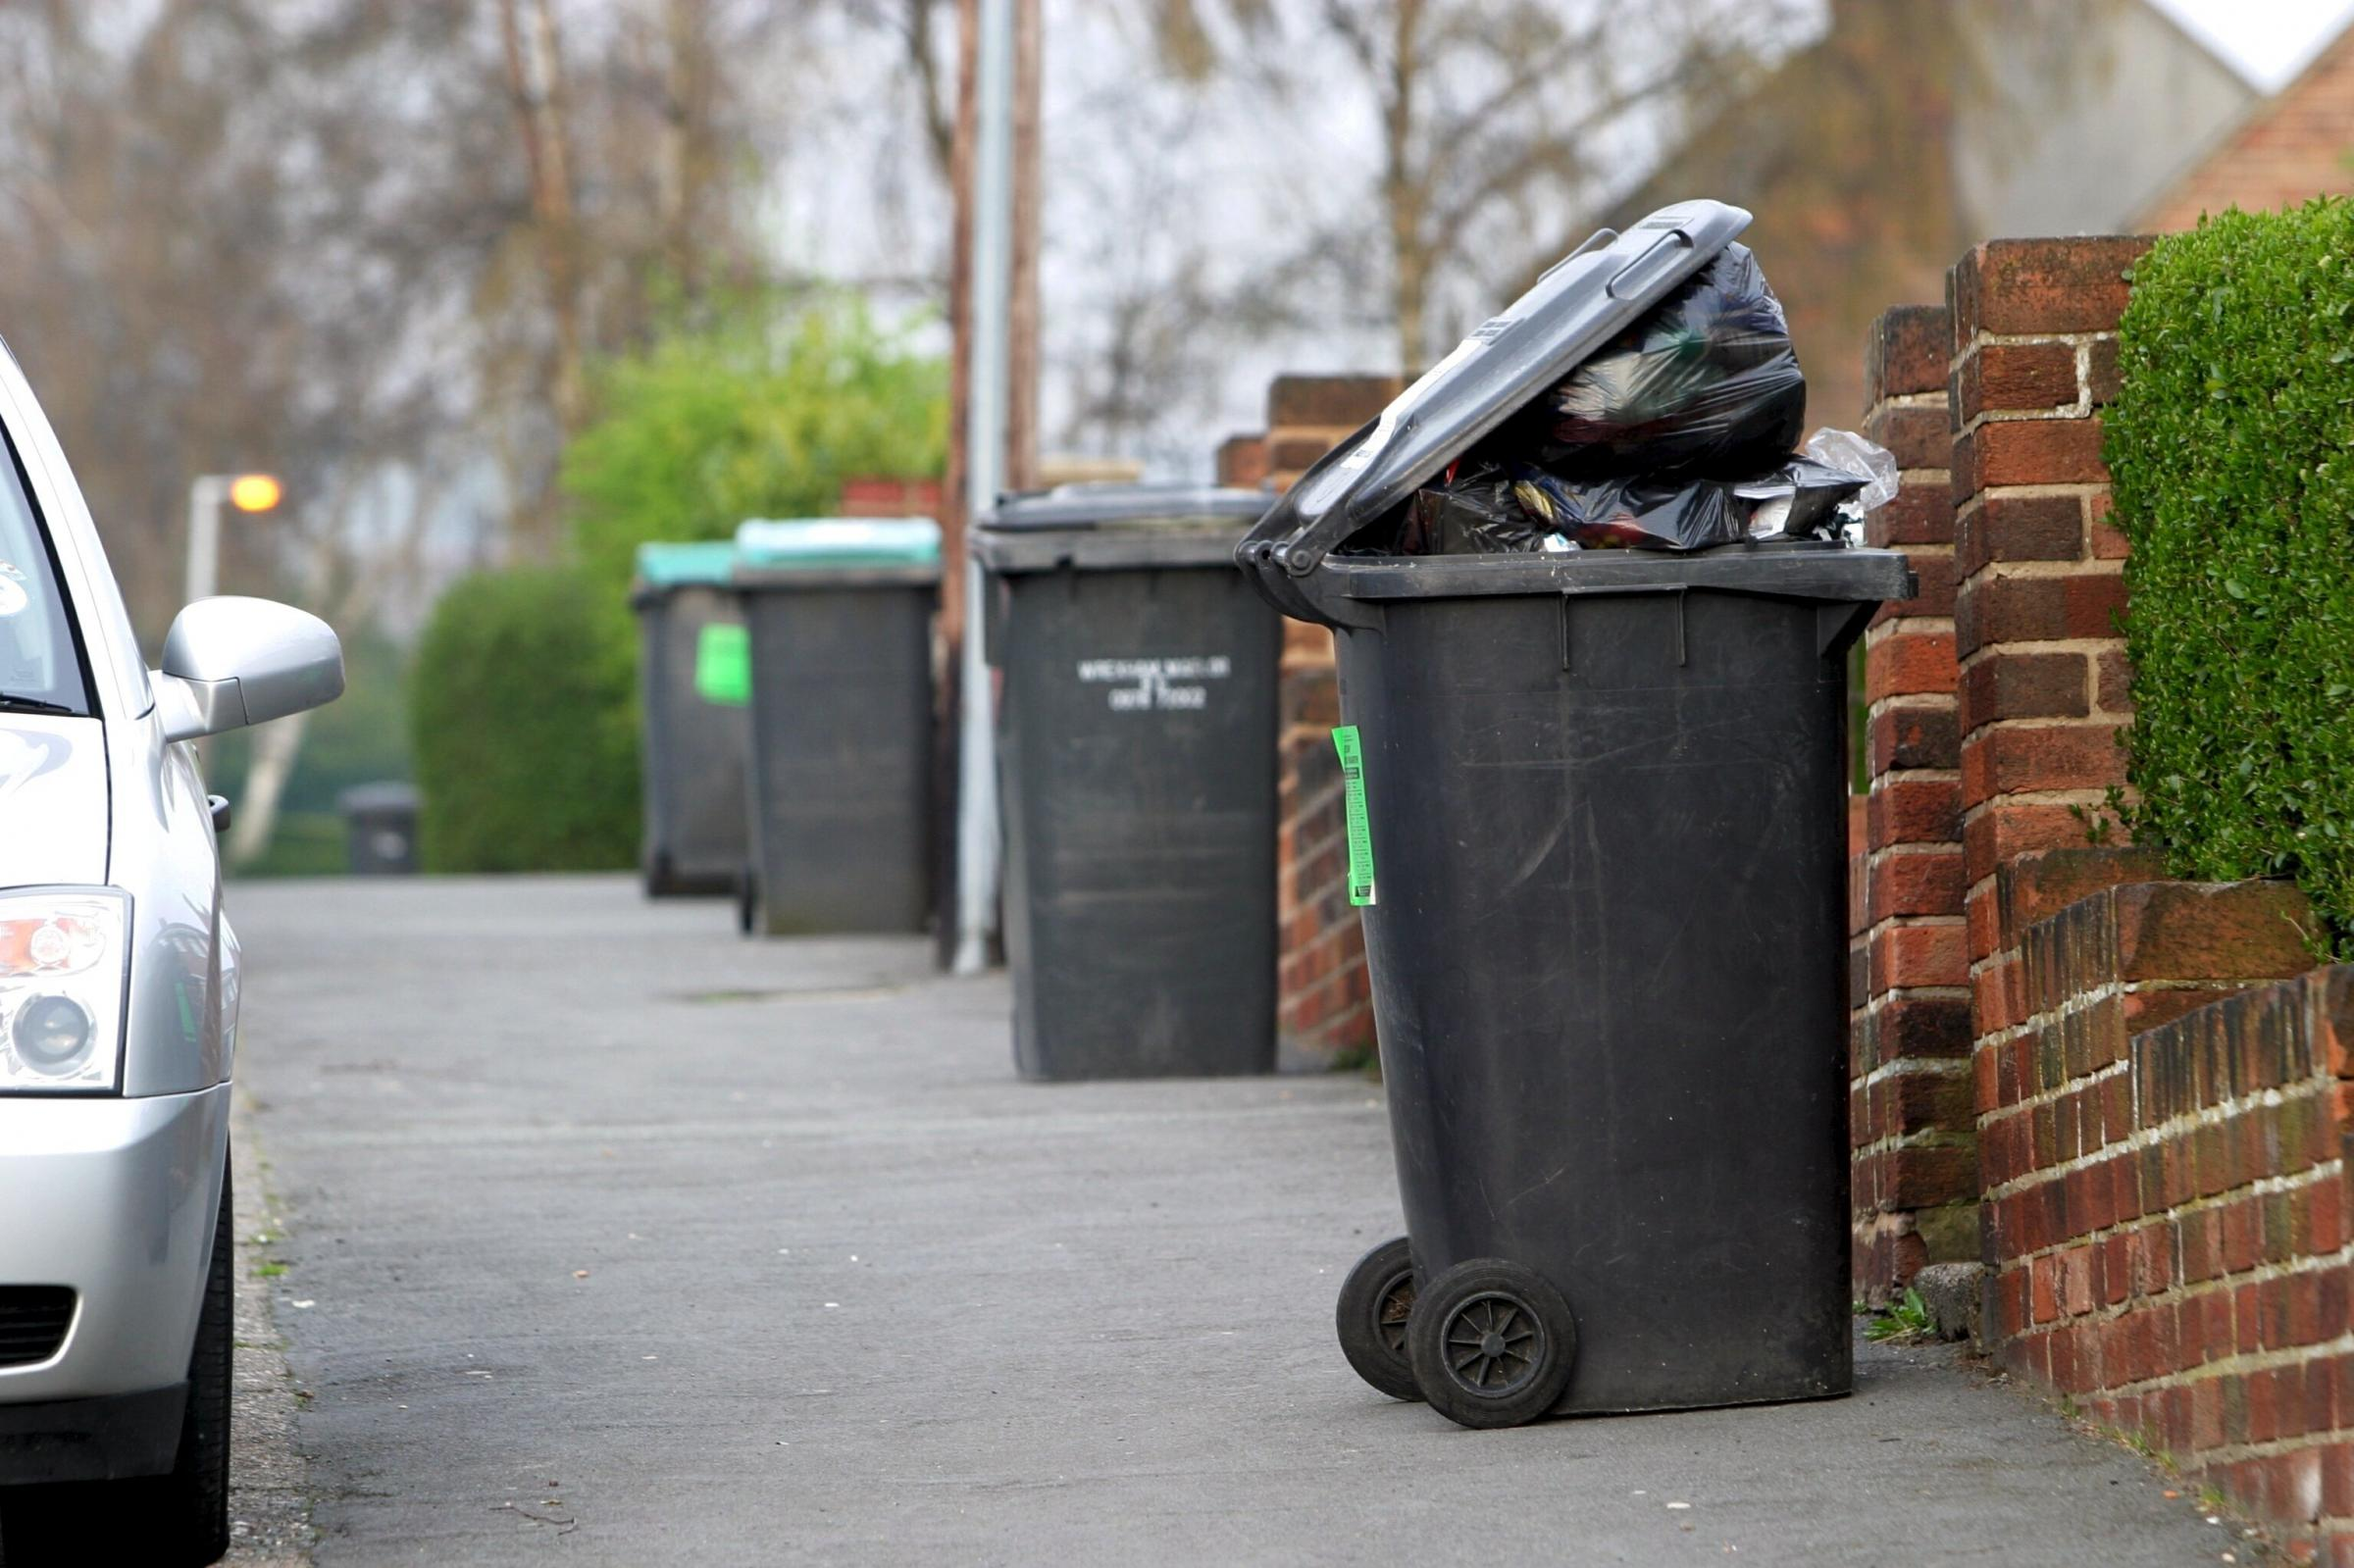 Missed bin collections remain number one cause of complaints against Wrexham Council